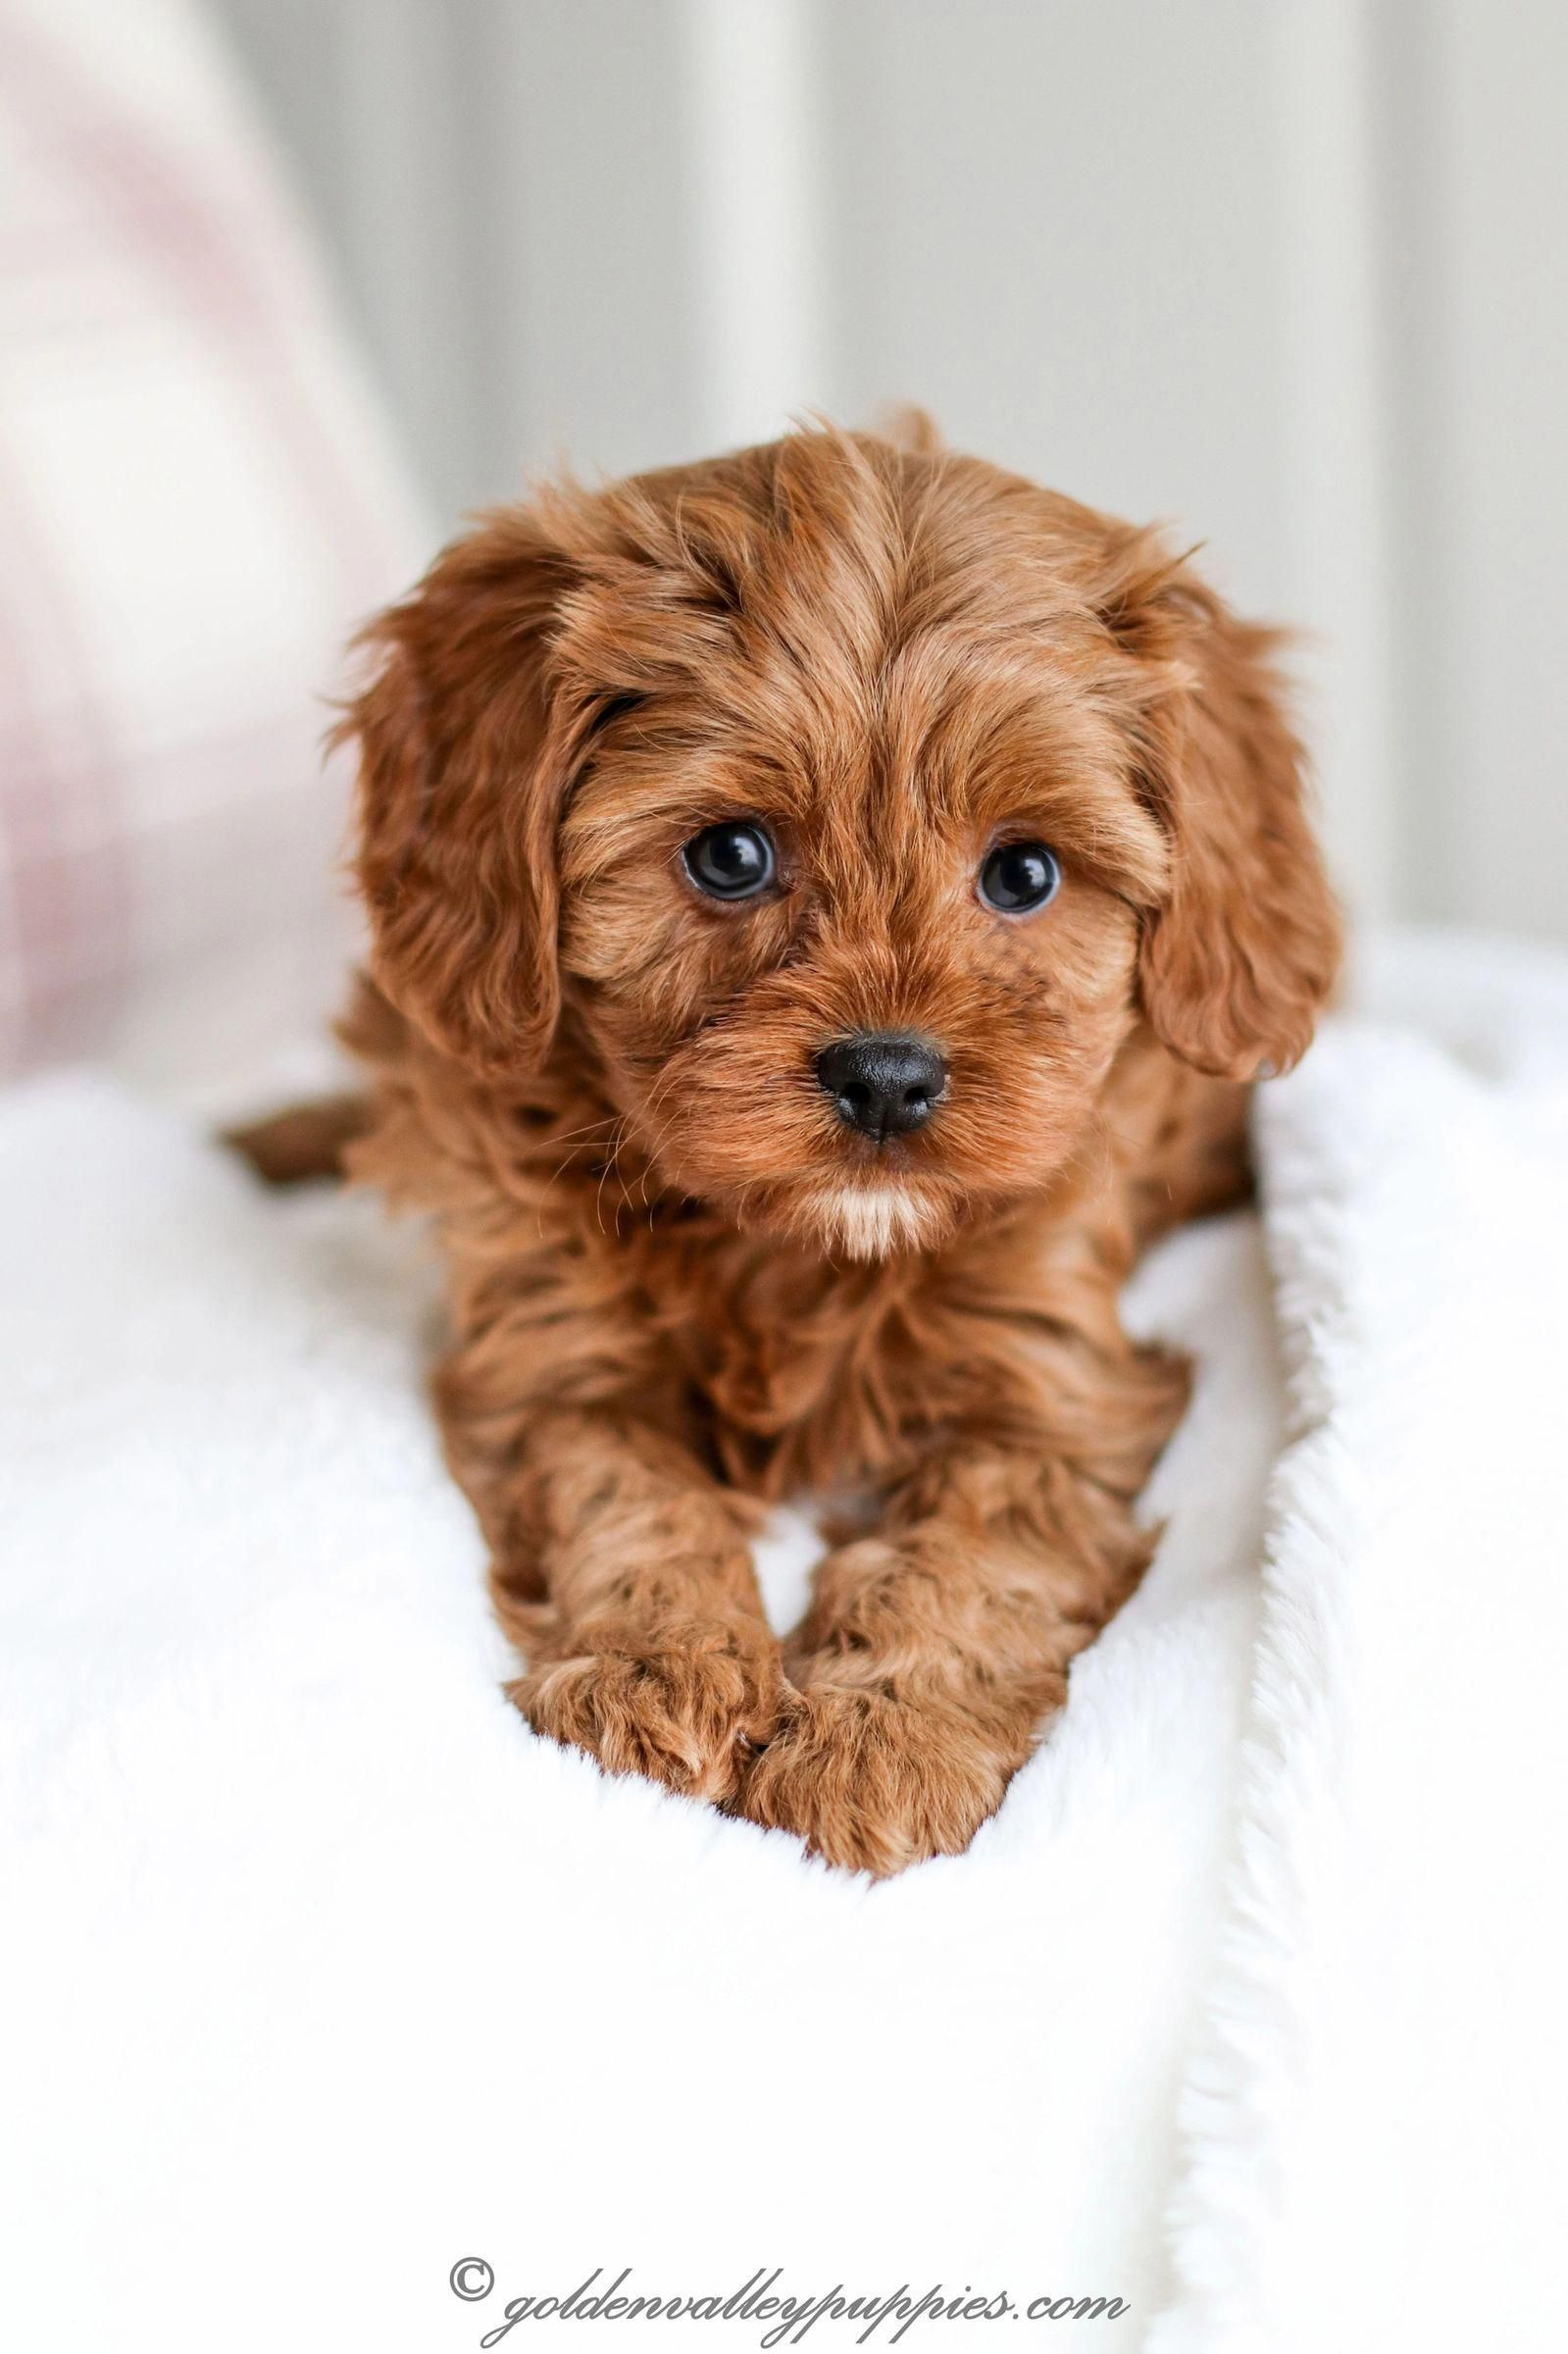 Our Puppy Album Cavapoo Puppies For Sale Golden Valley Puppies Cavapoo Puppies King Charles Cavalie In 2020 Cute Puppies Cute Dogs And Puppies Super Cute Puppies